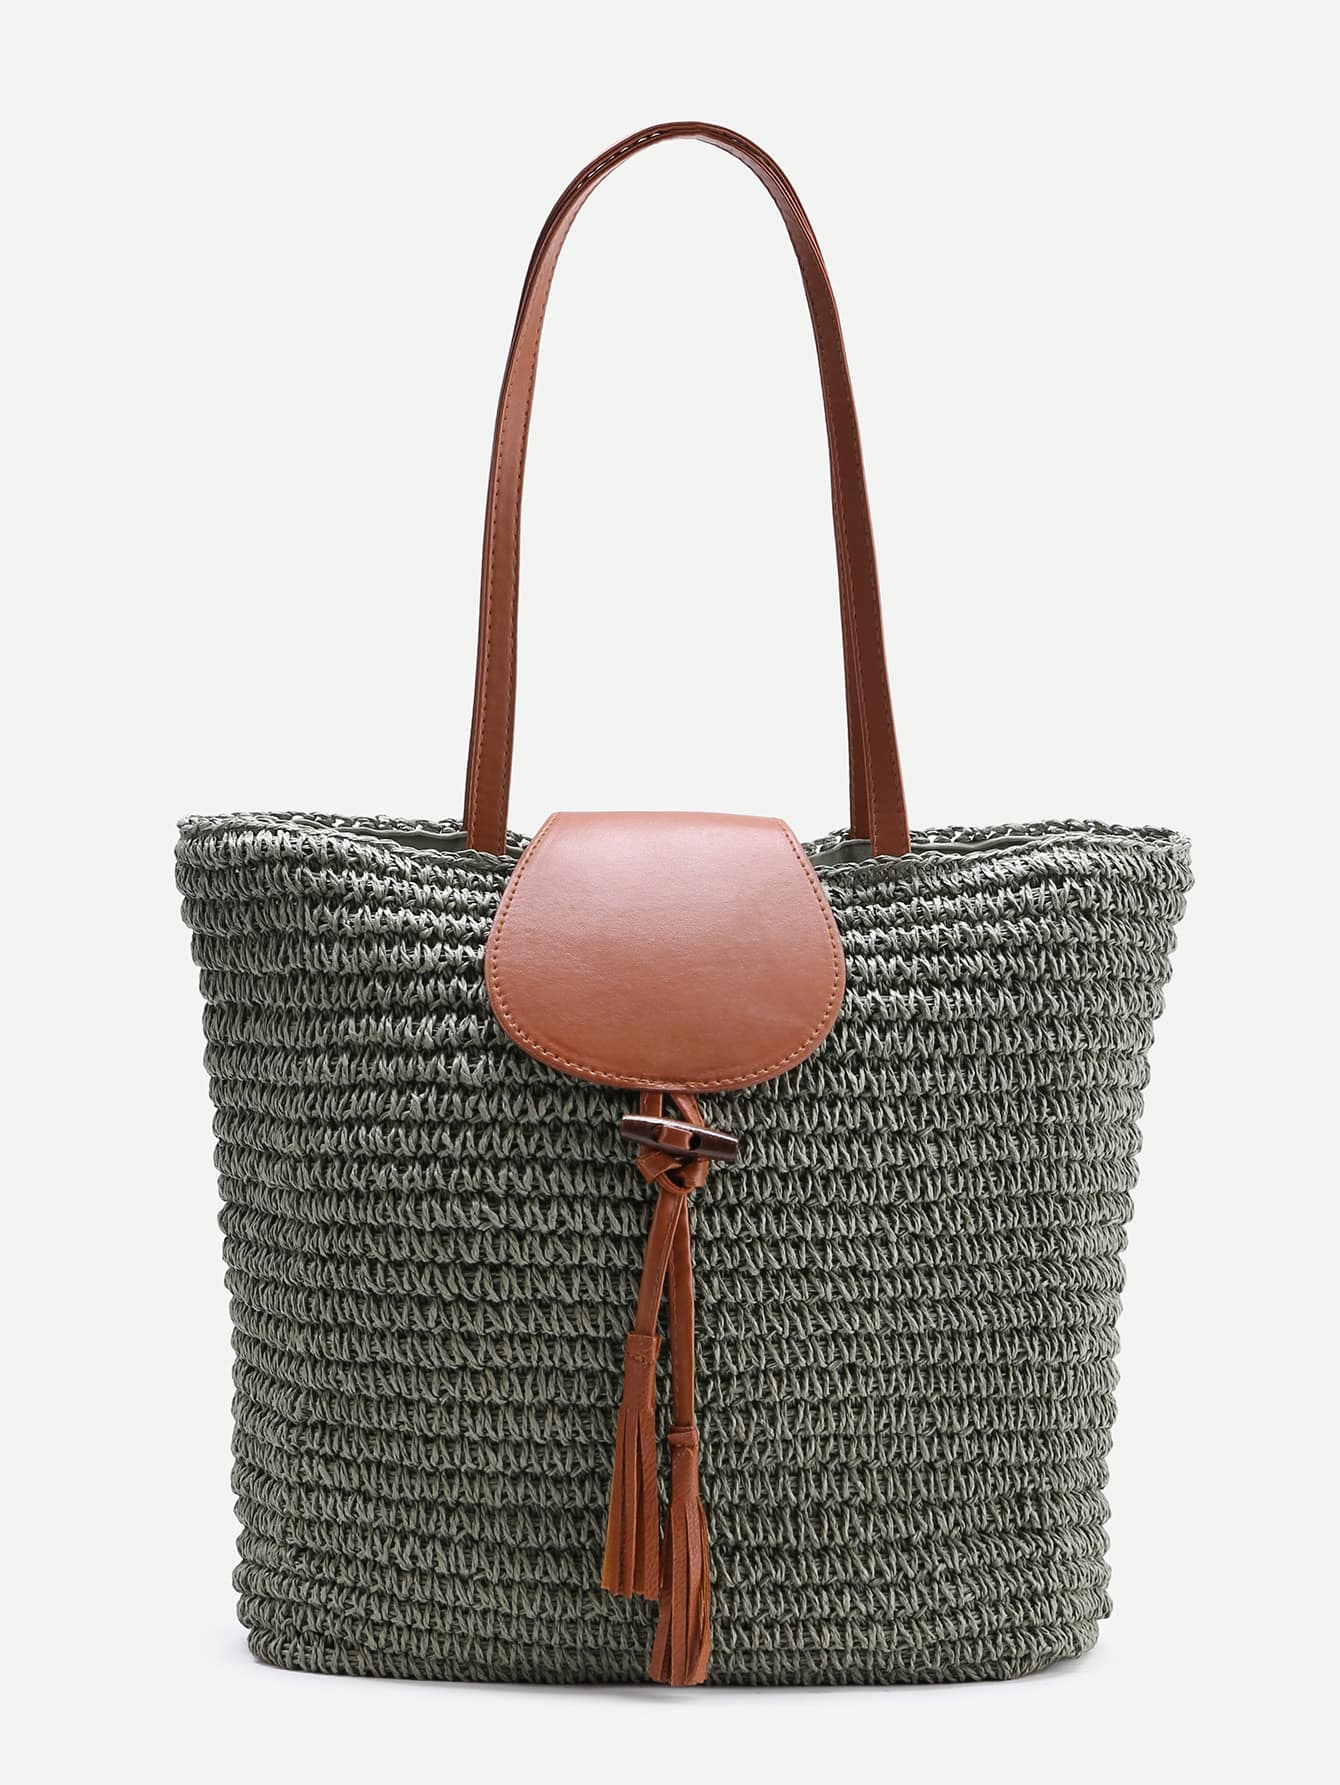 E-collection Straw Tote with Mat Green, • Made of % cotton canvas and straw • Great for a picnic in the park or a day at the beach • Spacious earth friendly tote • Outside pocket for accessories.